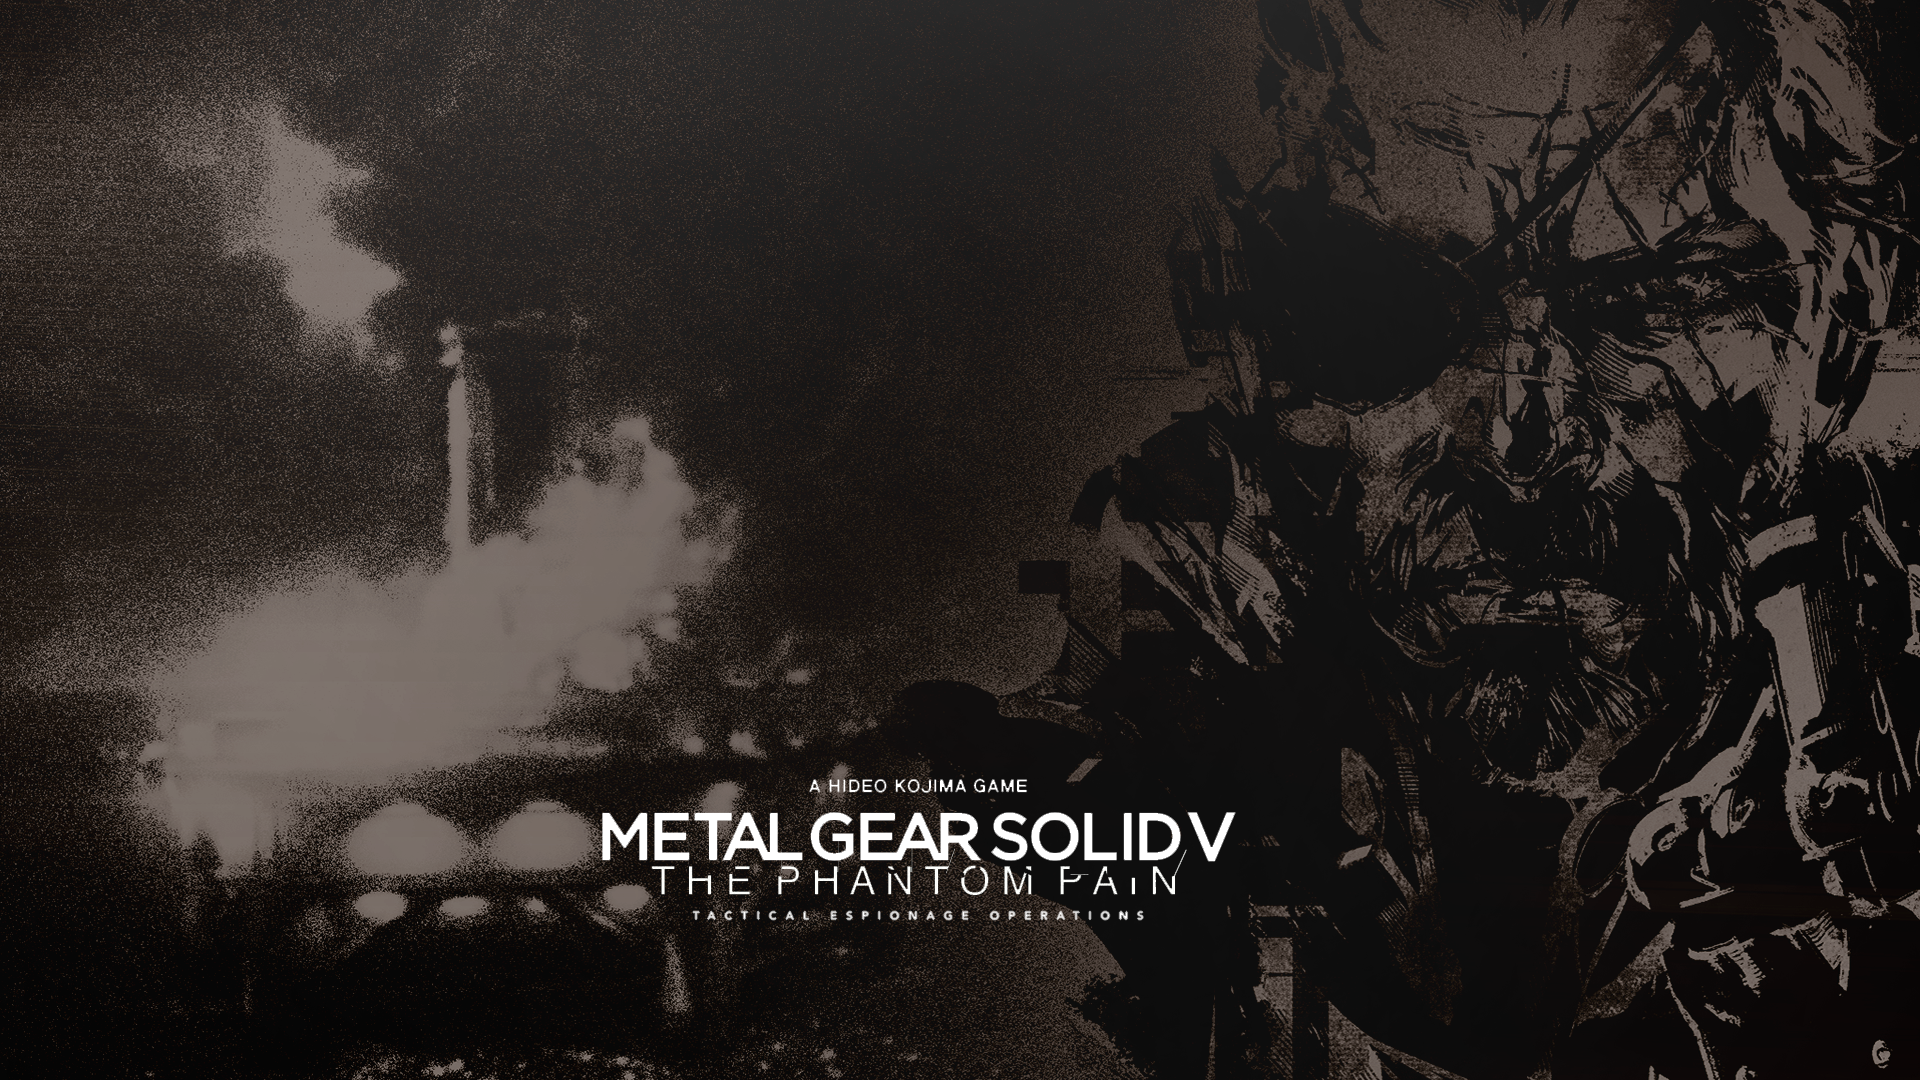 metal gear solid v the phantom pain wallpaper by ifadefresh on